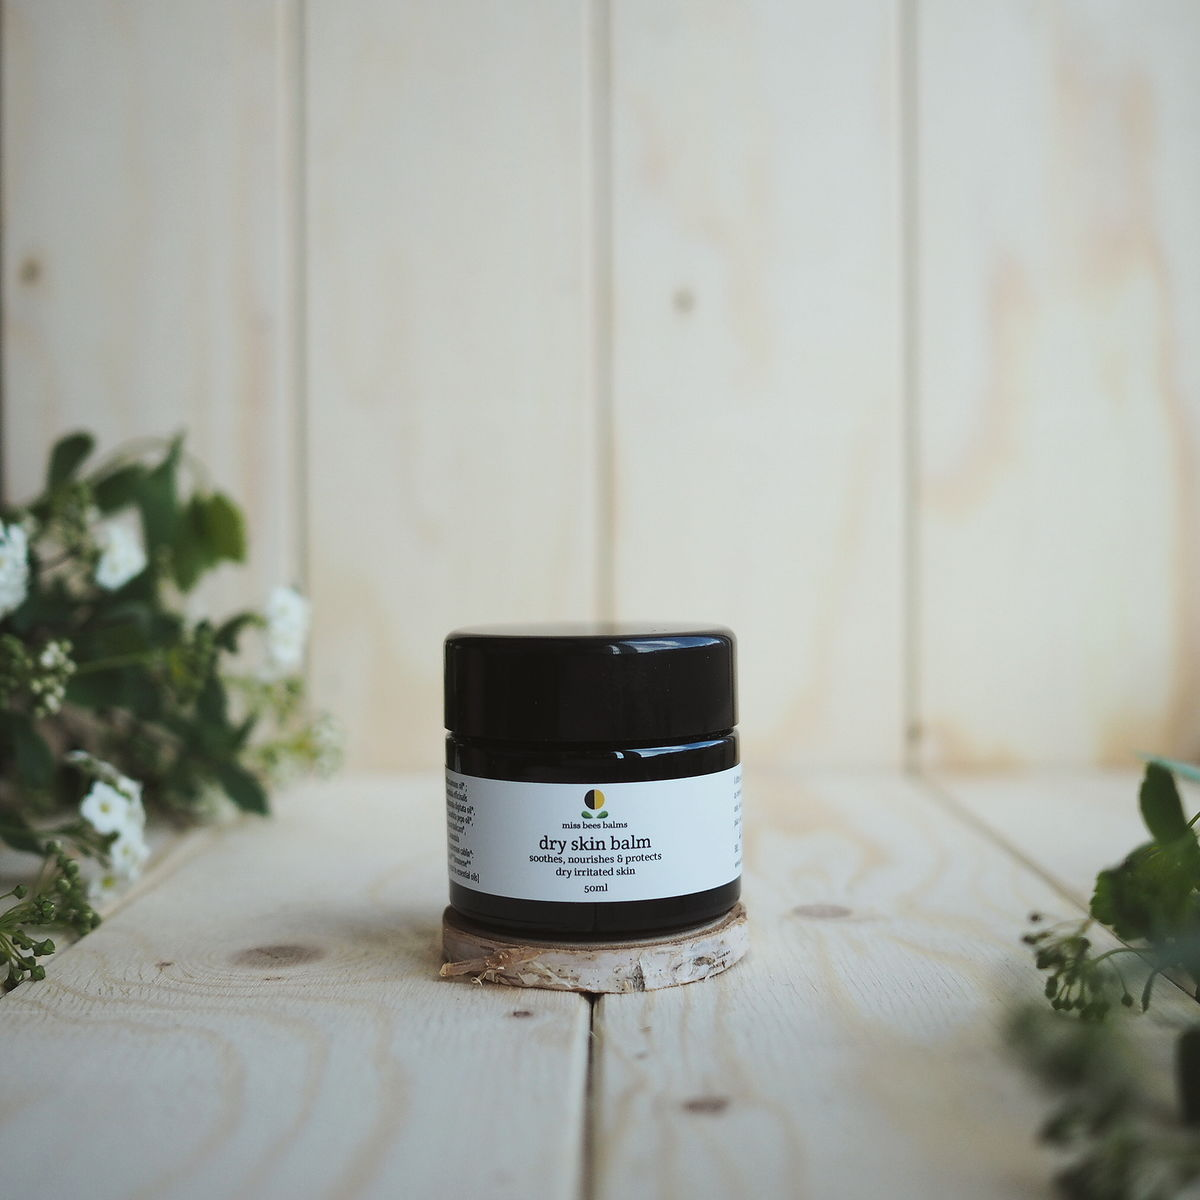 dry skin balm - product images  of